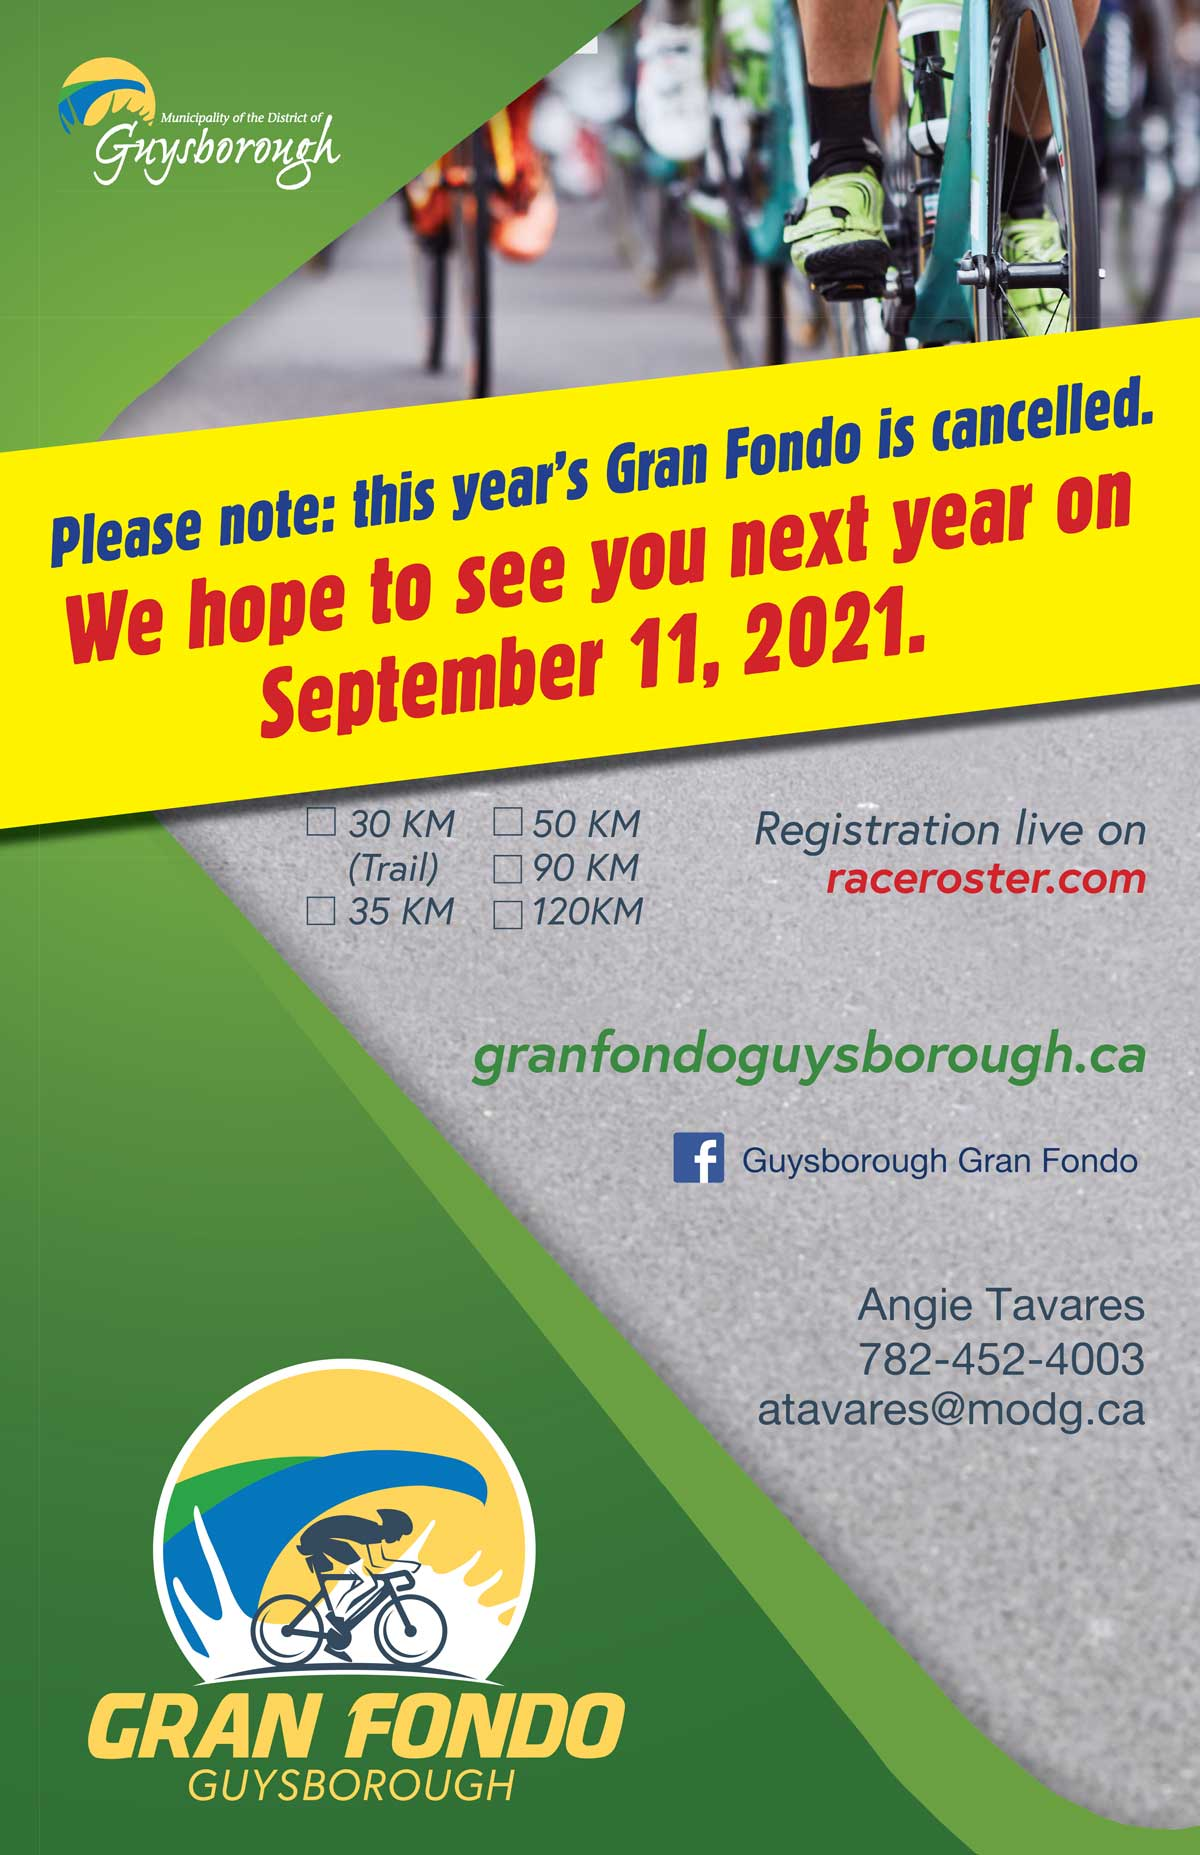 Gran Fondo Guysborough - Cancellation 2020